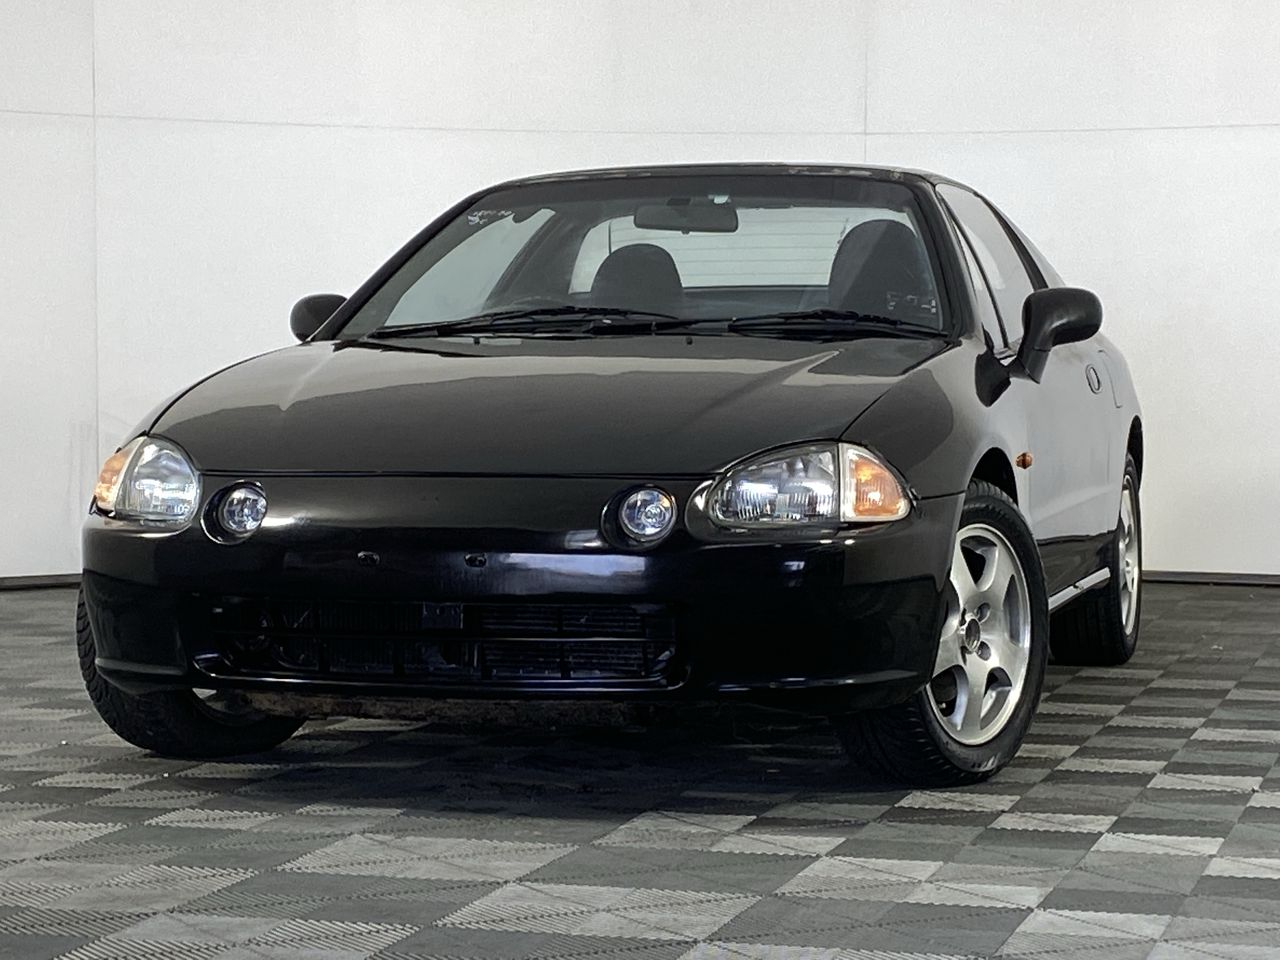 1995 Honda CRX Manual Coupe Wovr+Repair